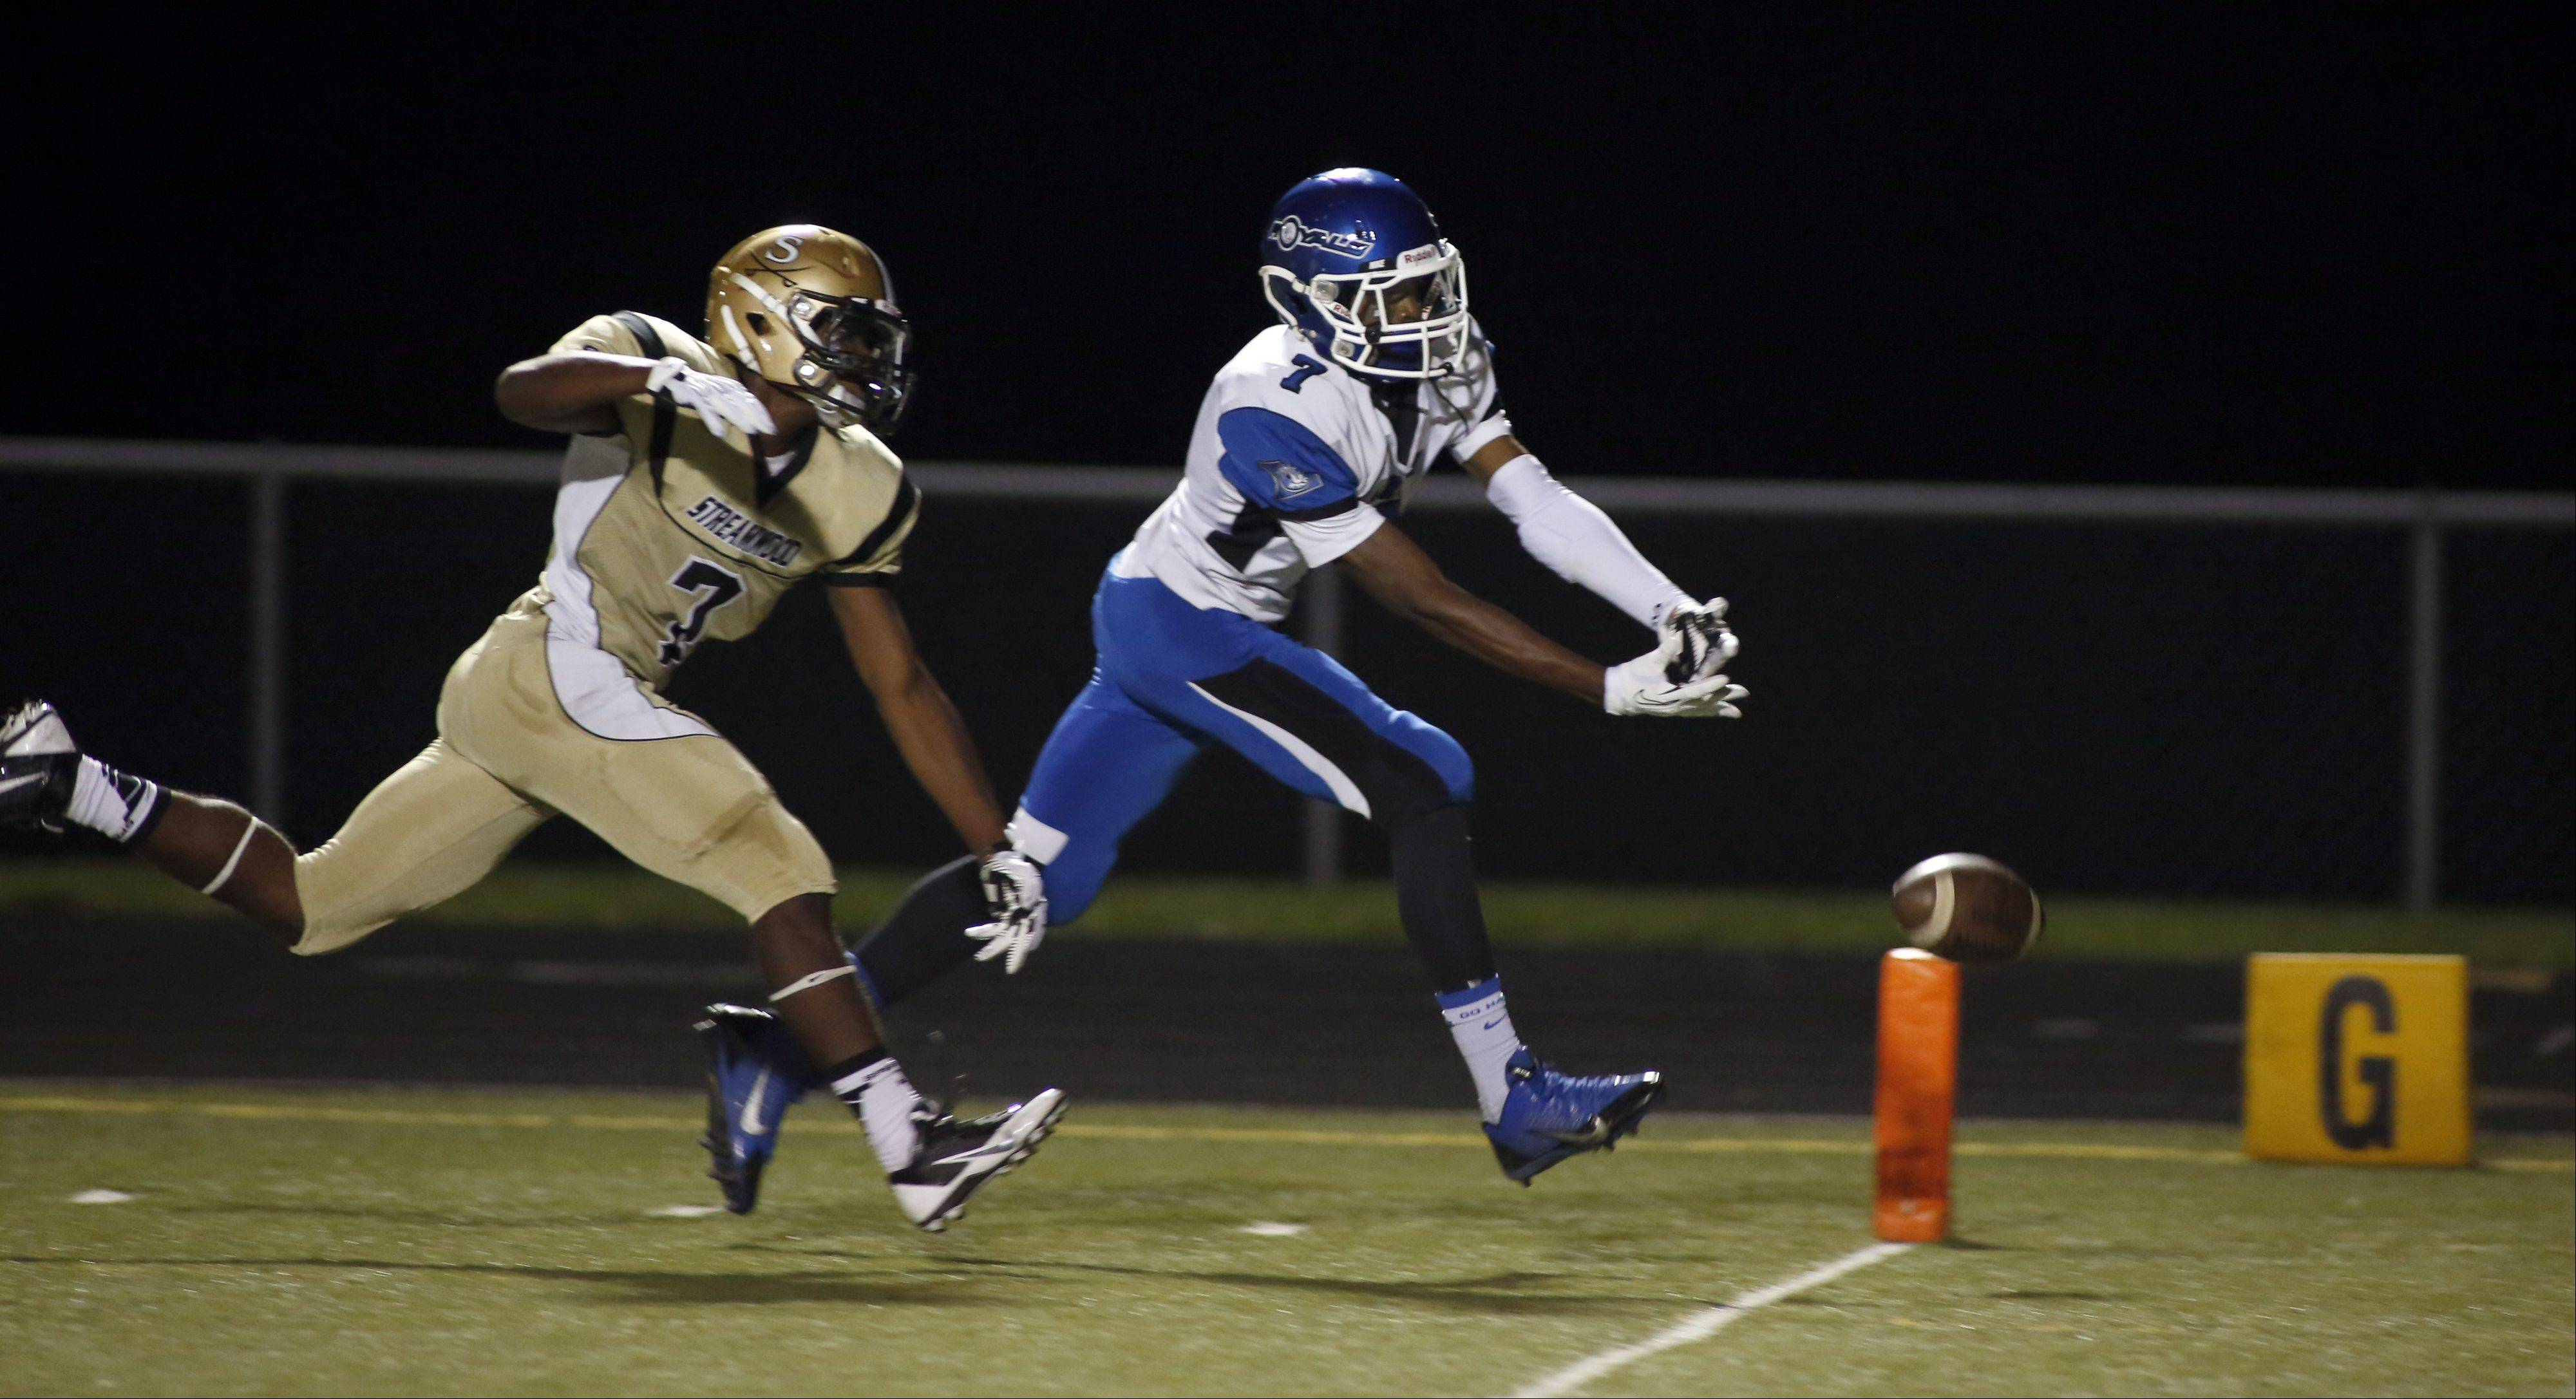 Streamwood's Cody Jayko tries to defend a pass to Larkin's Dante Bonds.